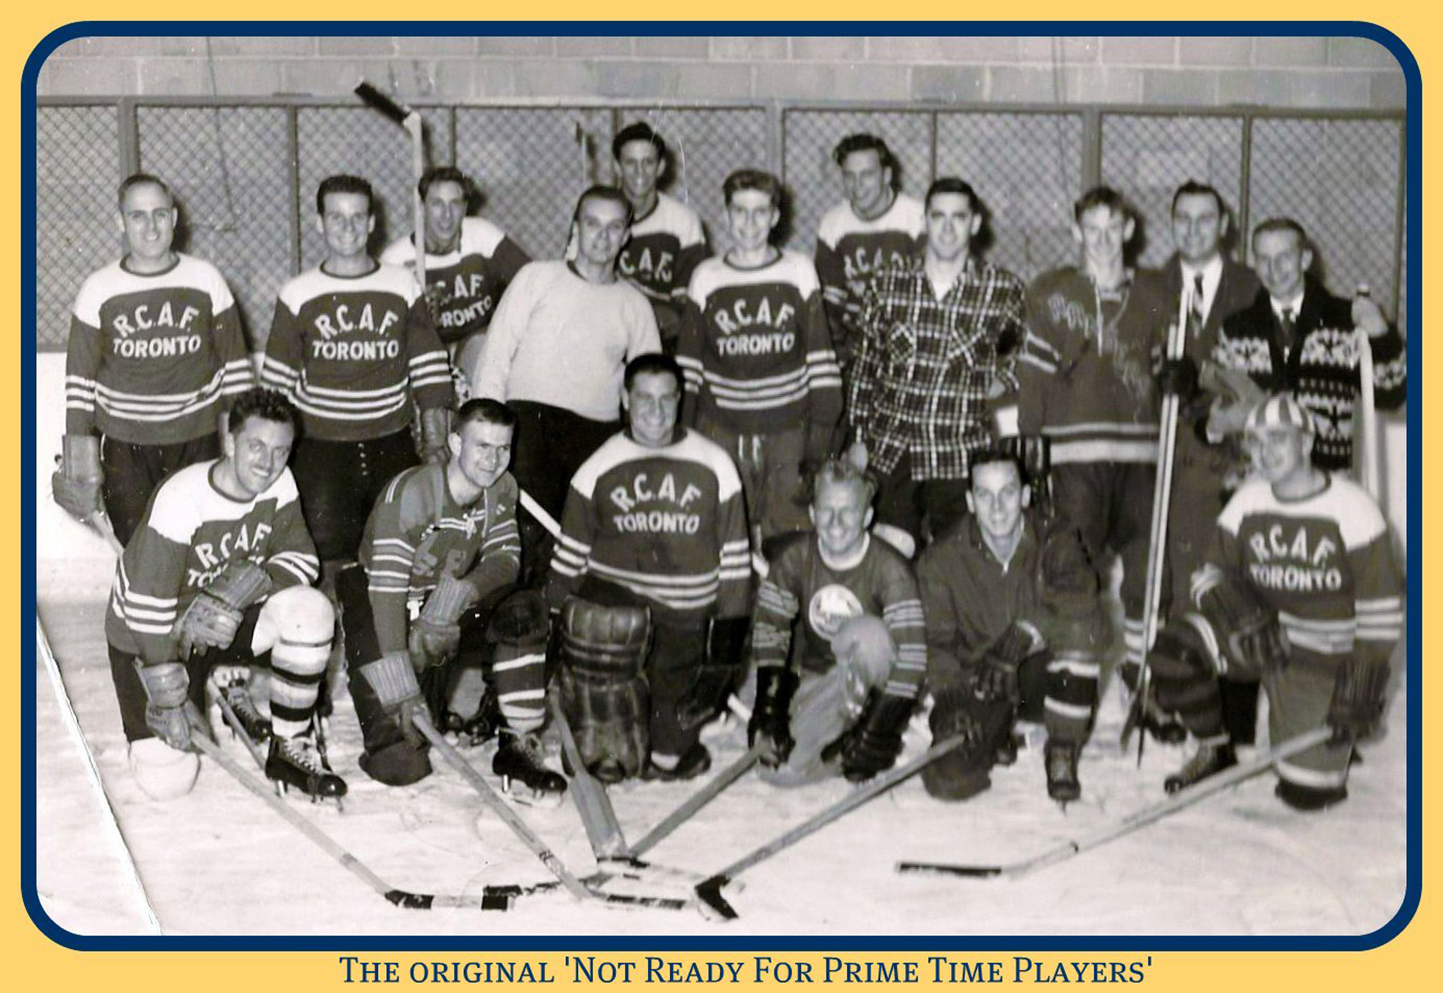 """The Original 'Not Ready For Prime Time Players.'"" Canadian Forces Base Downsview hockey team. PHOTO: 400 & 411 Squadrons, Downsview Life https://get.google.com/albumarchive/106746528070391002095/album/AF1QipN-PYQGzXSGUulMgdbMOg1ritloTh4FqLi_sK87"